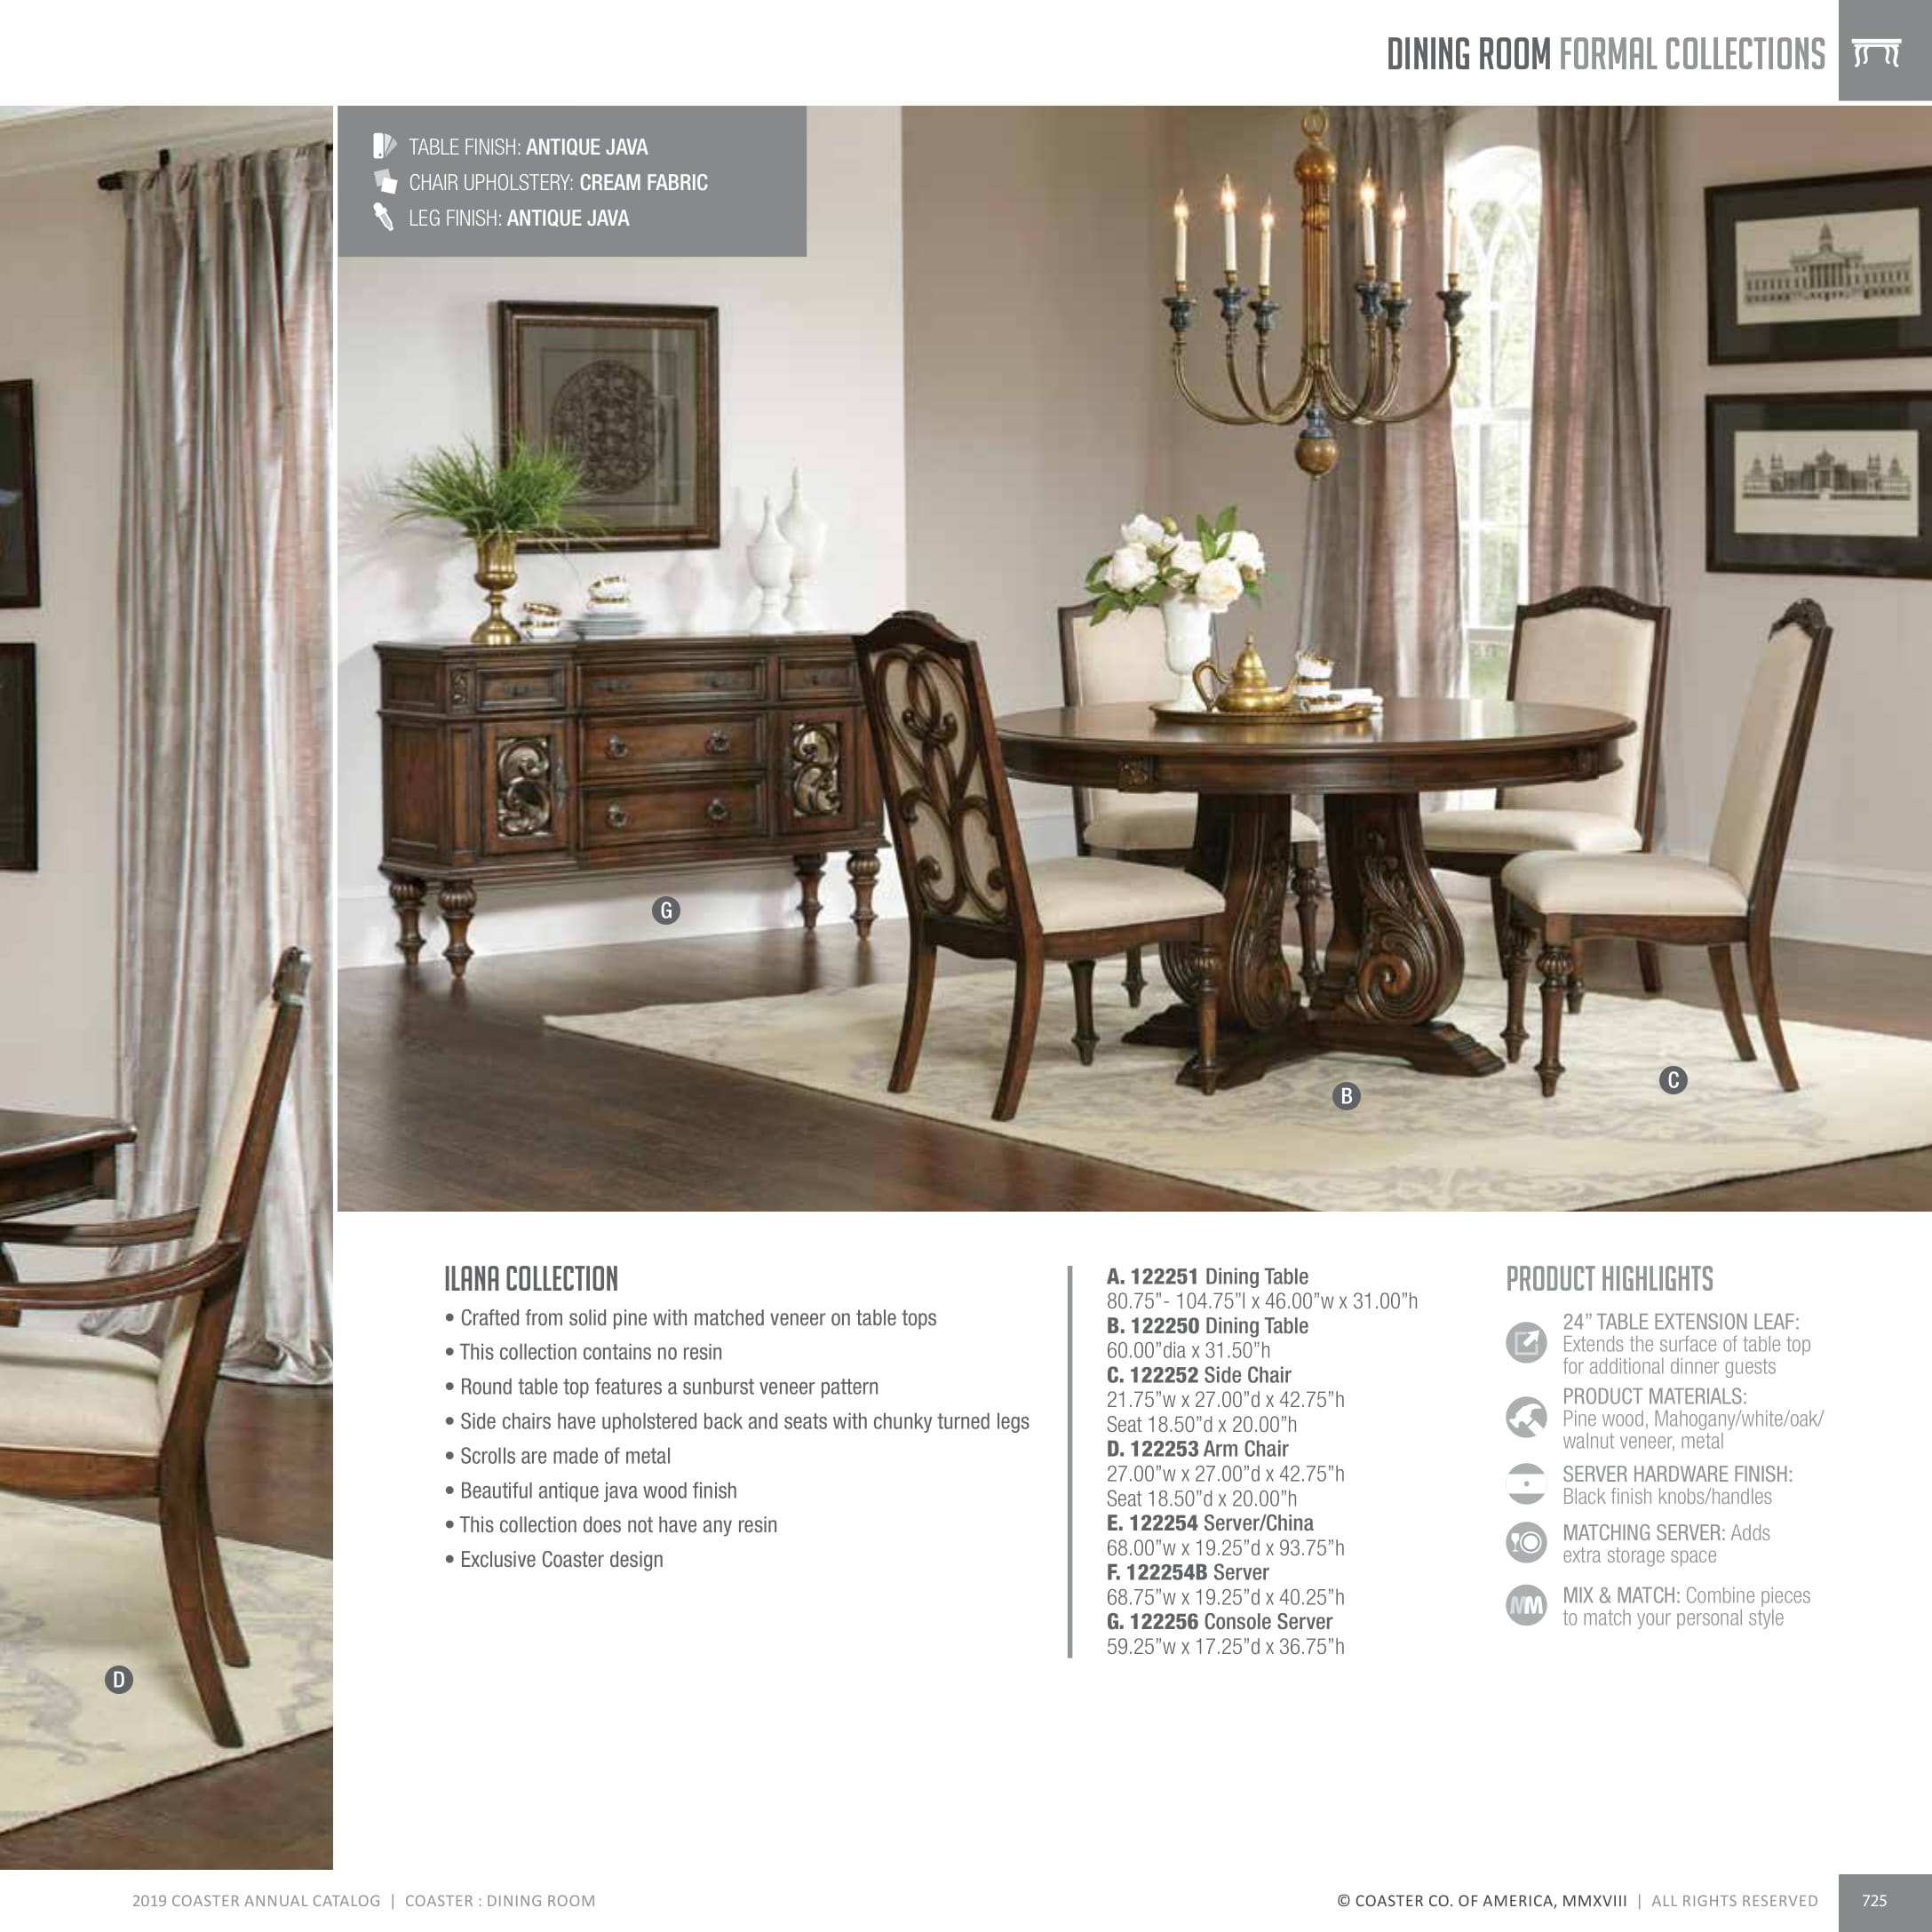 View 2019 Dining Room Catalog As PDF